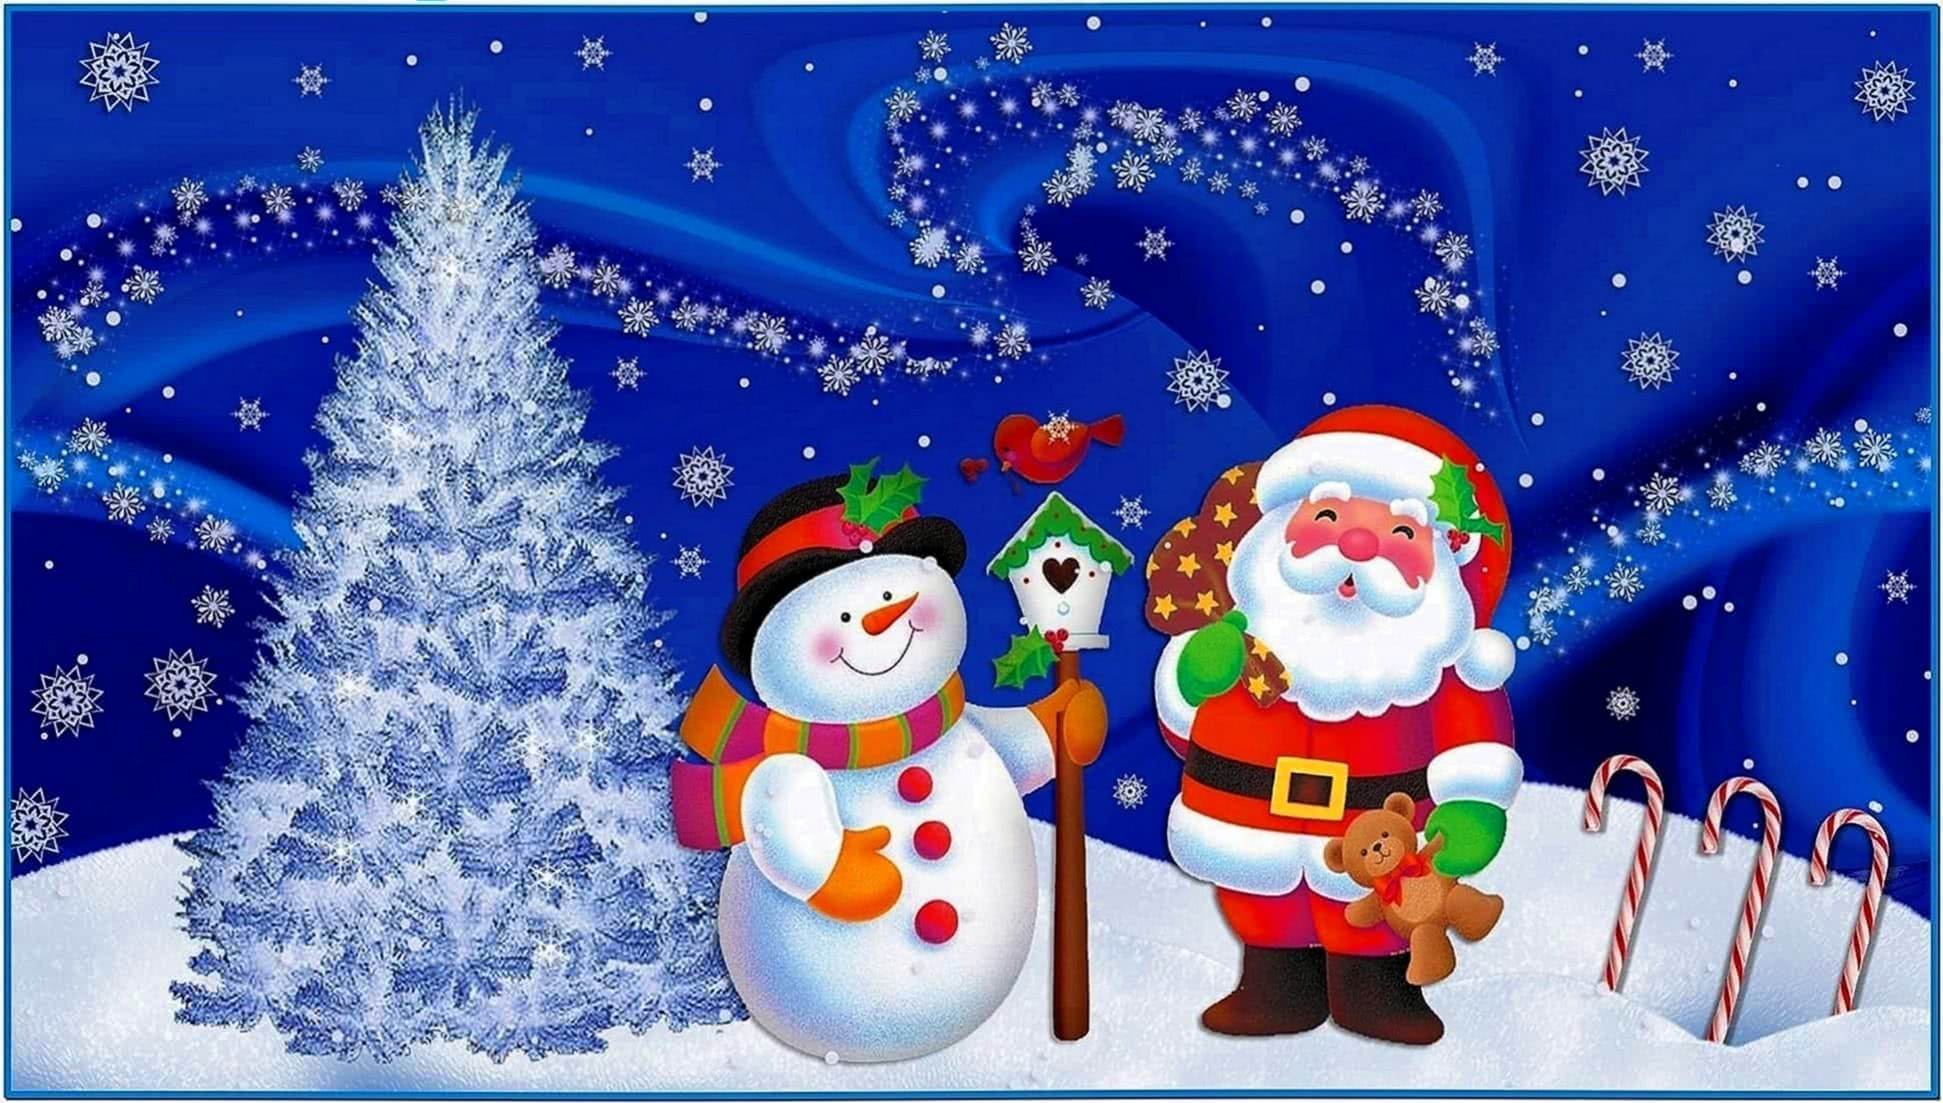 Christmas wallpapers and screensavers download free